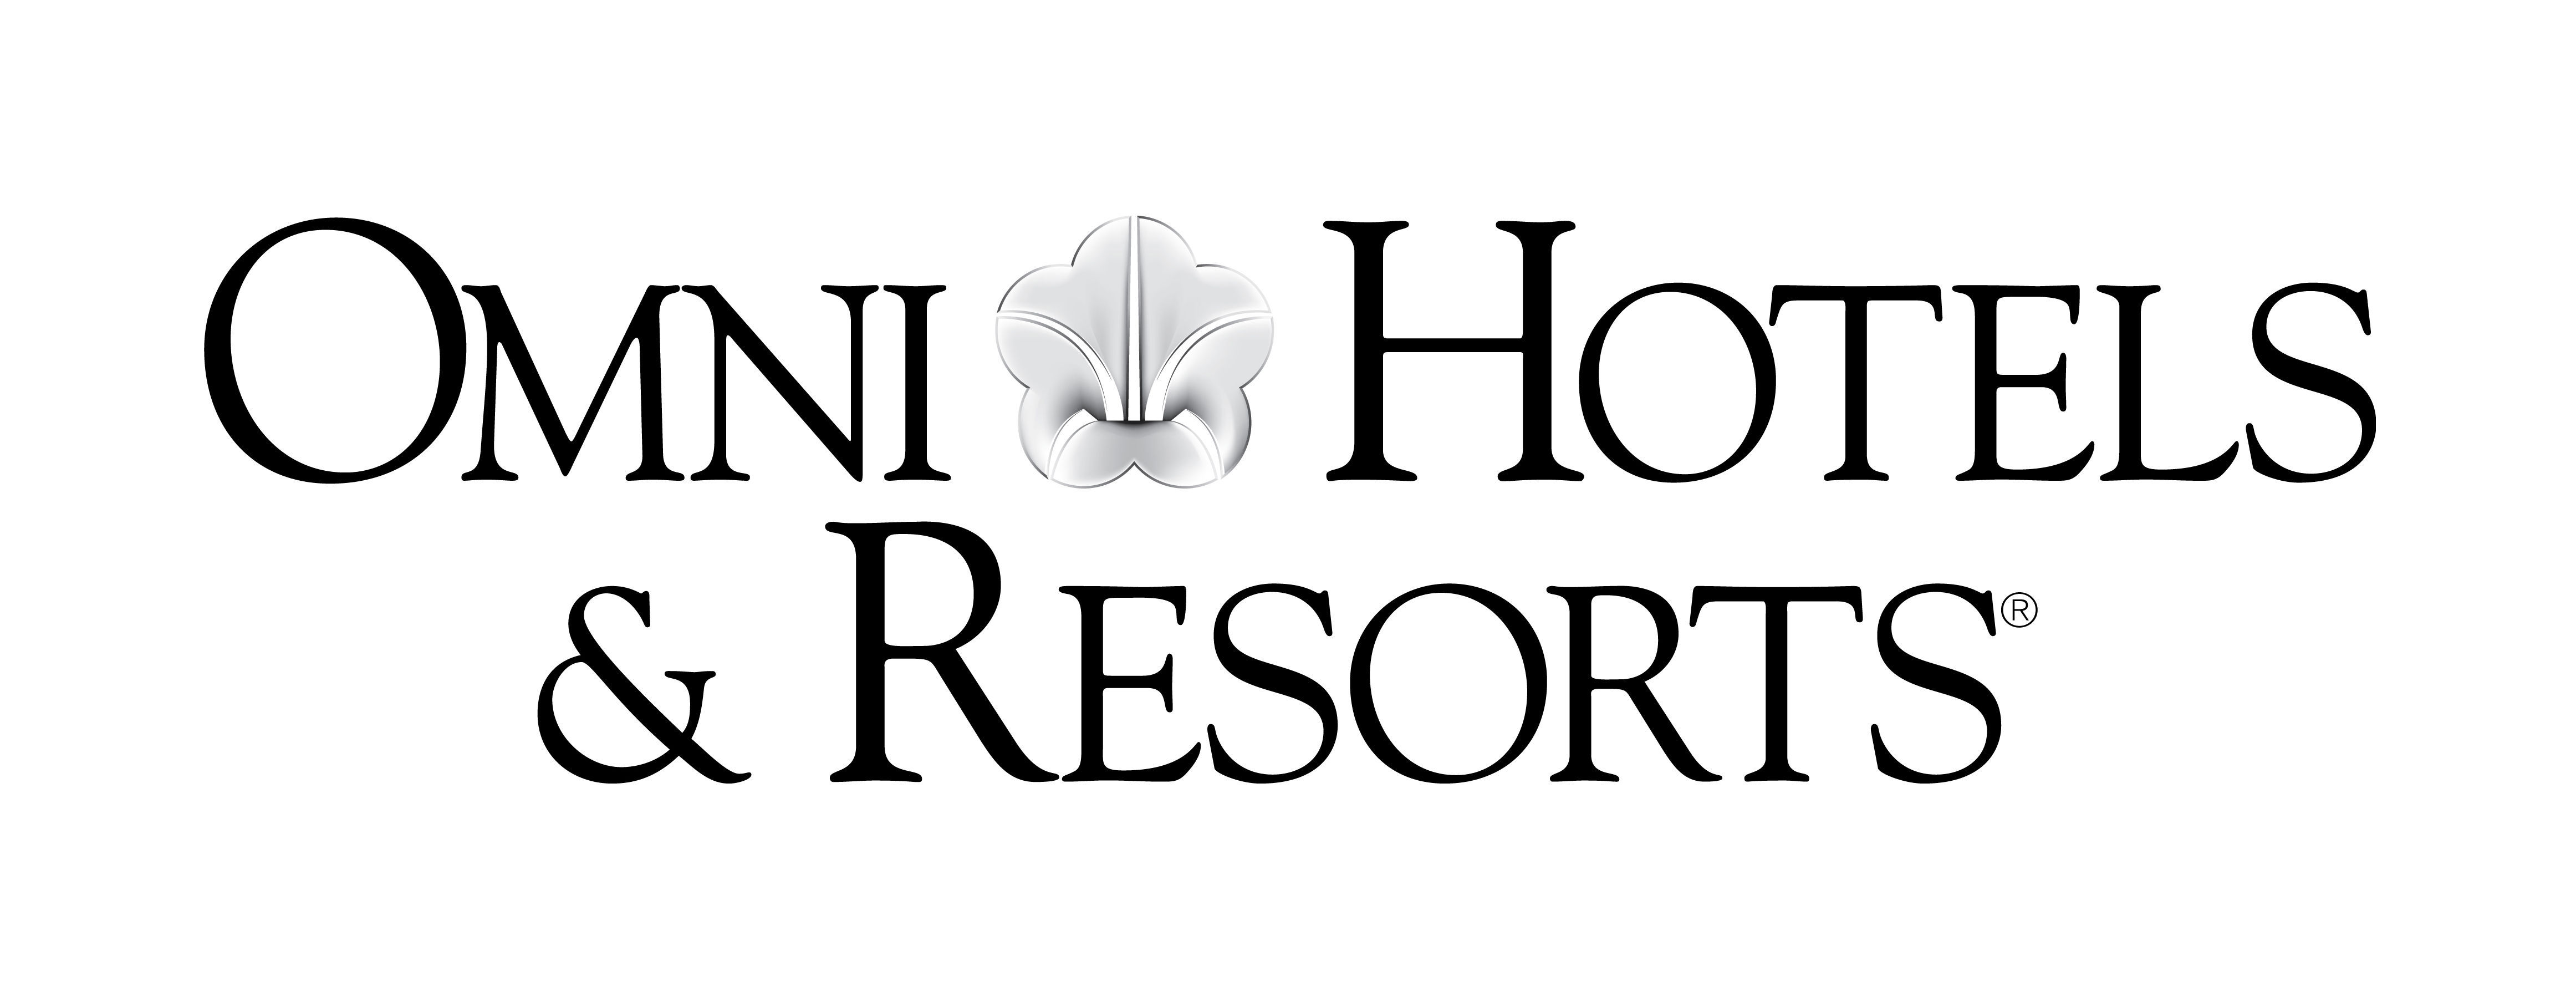 /documents/193956/3652785/Omni+Hotels+and+Resorts+stacked+logo/bbe940ee-9a92-4c93-9e54-53e937f0691b?t=1514904546676